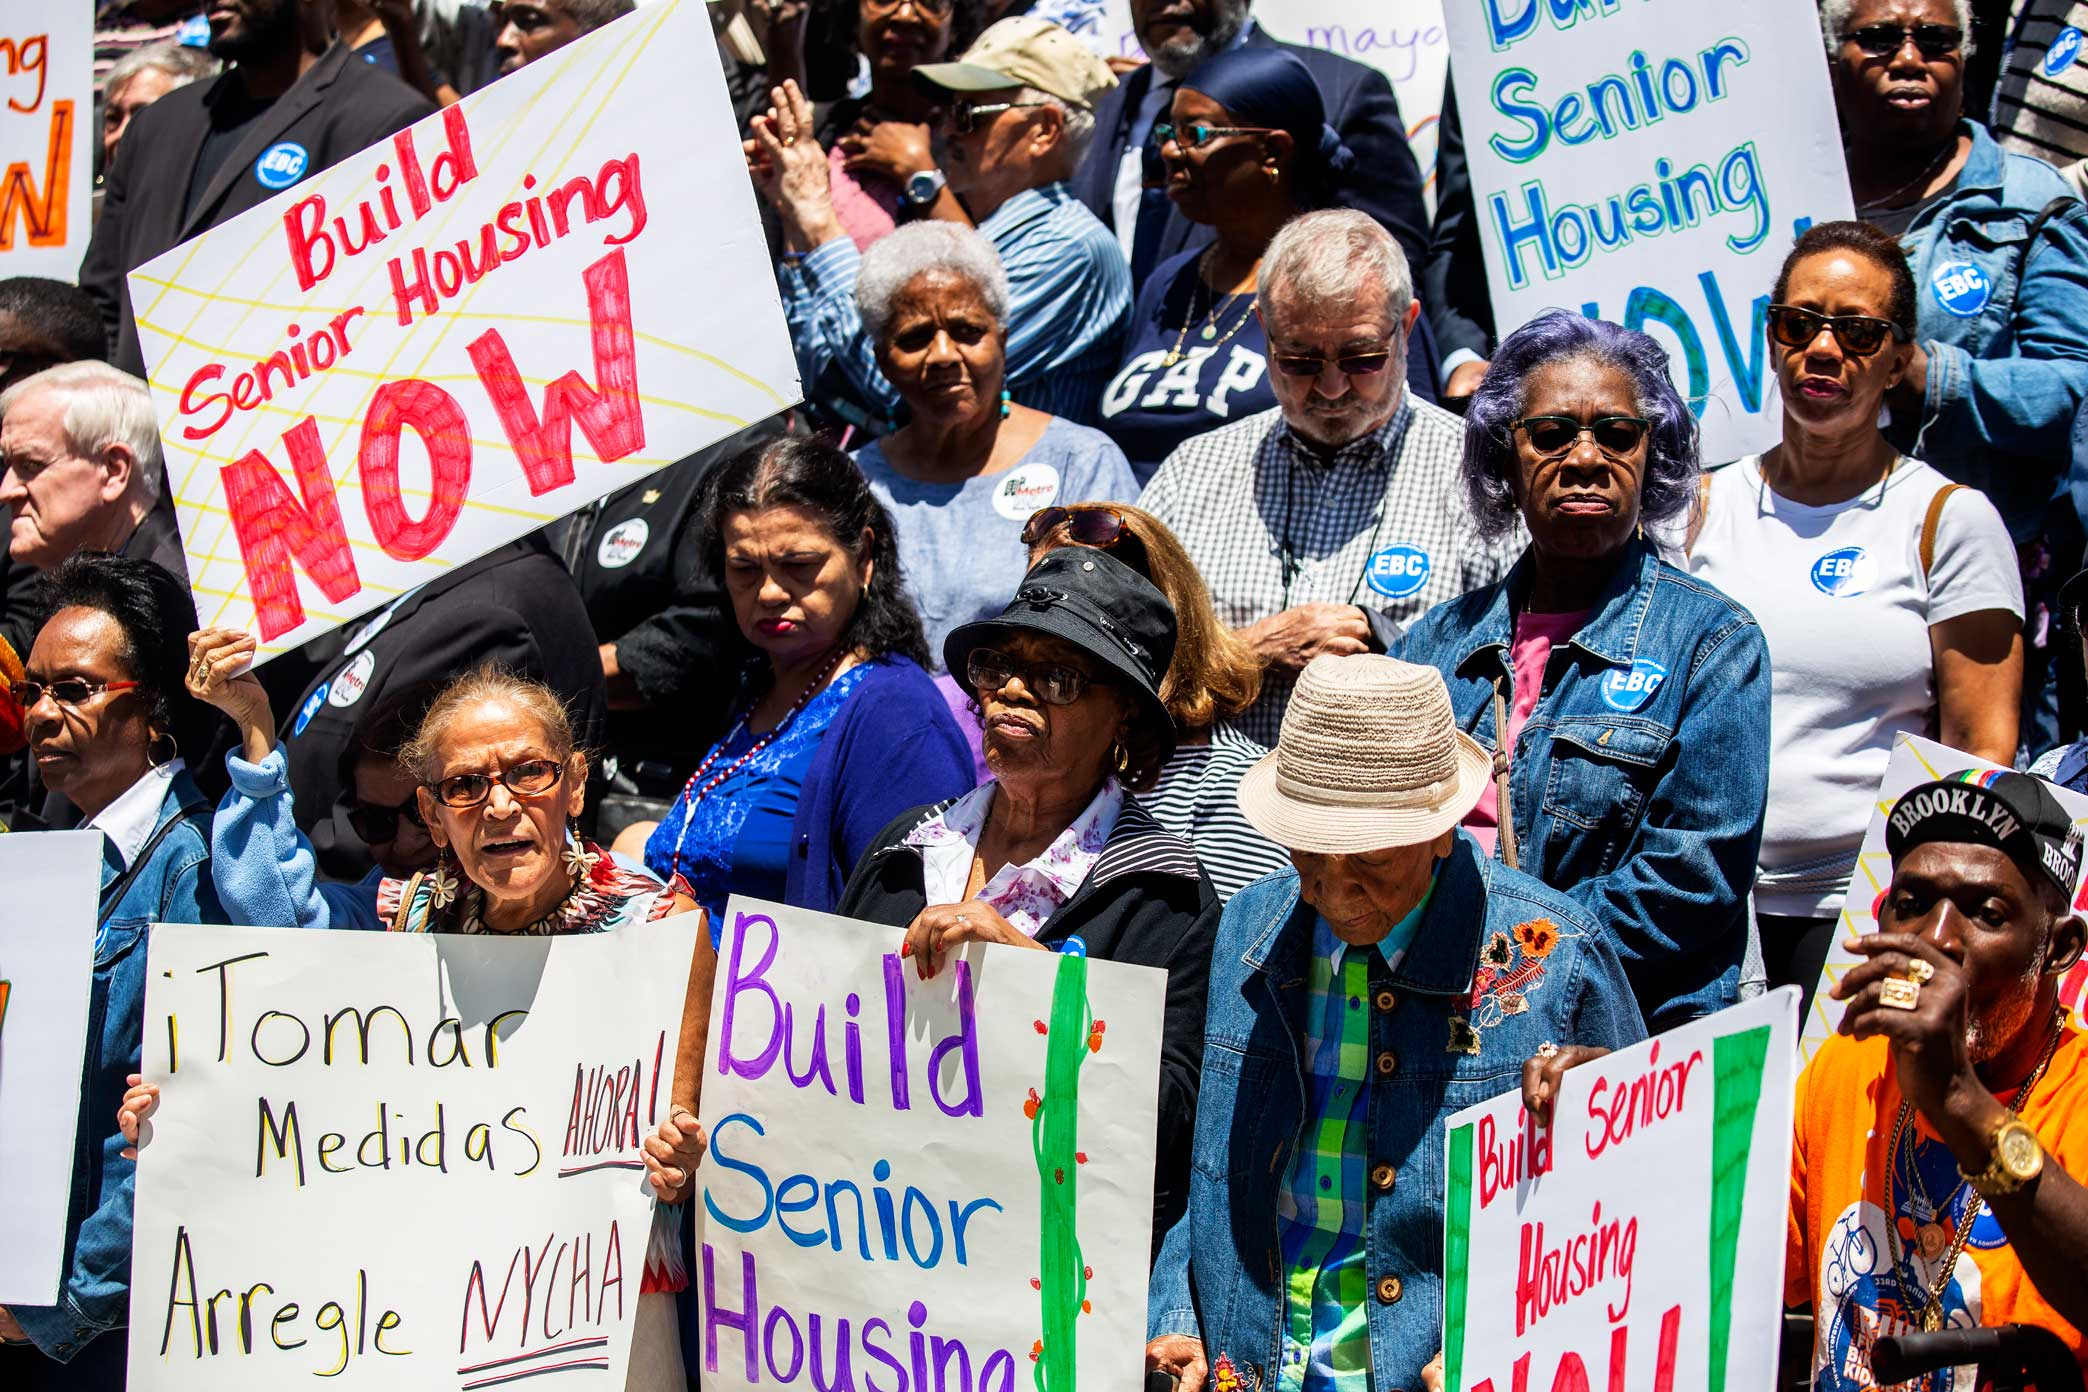 Community members rally at New York's City Hall to voice concerns about senior housing and NYCHA repairs, June 12, 2018.